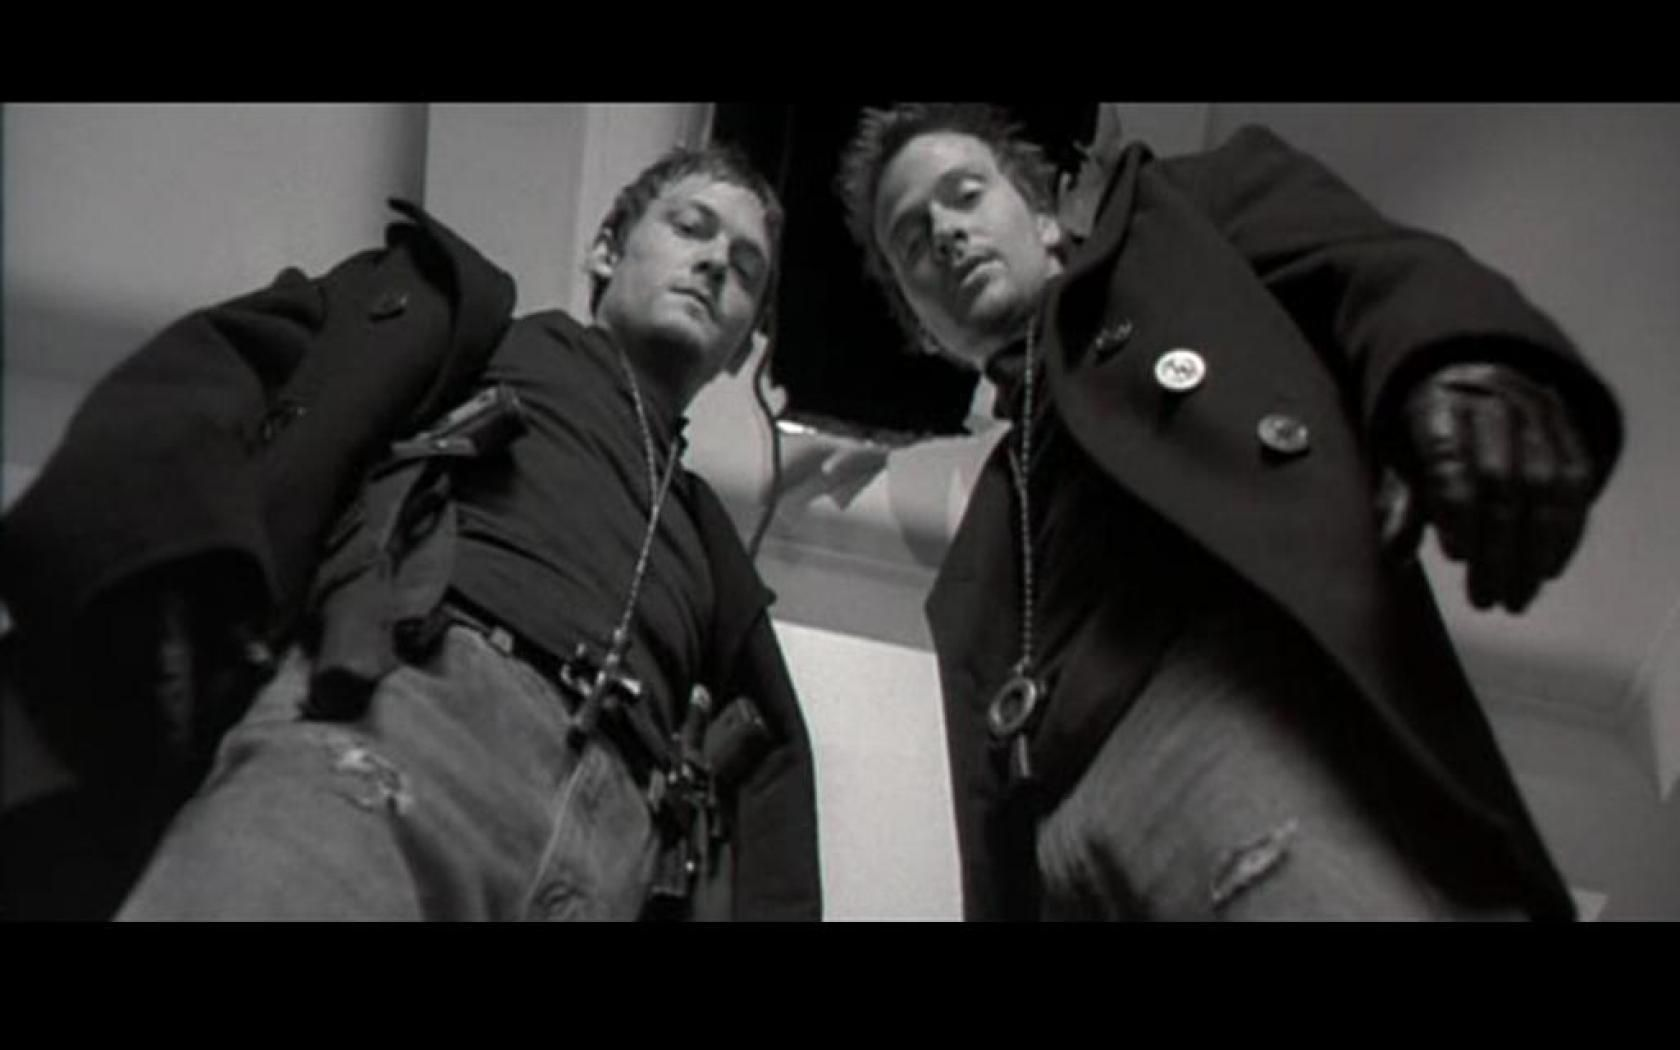 1680x1050 Boondock Saints HD Wallpapers | Backgrounds